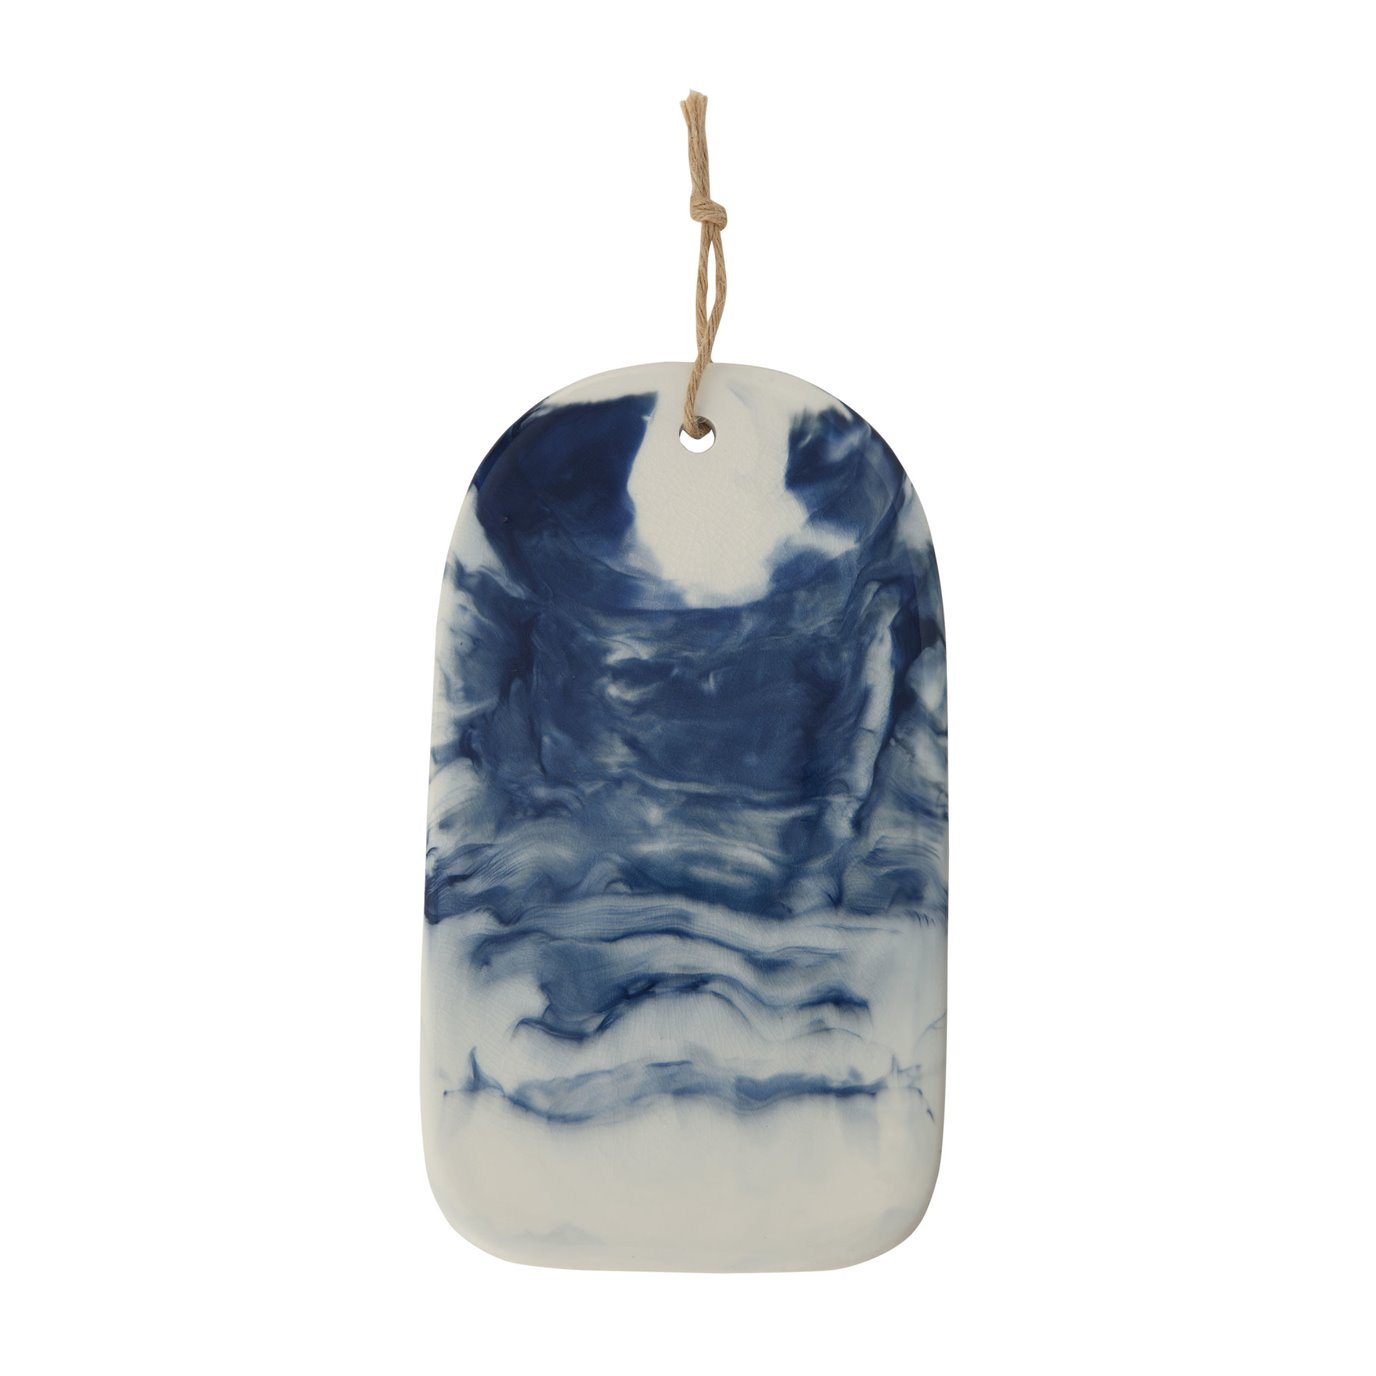 Blue & White Ceramic Cheese/Cutting Board with Marble Glaze Finish